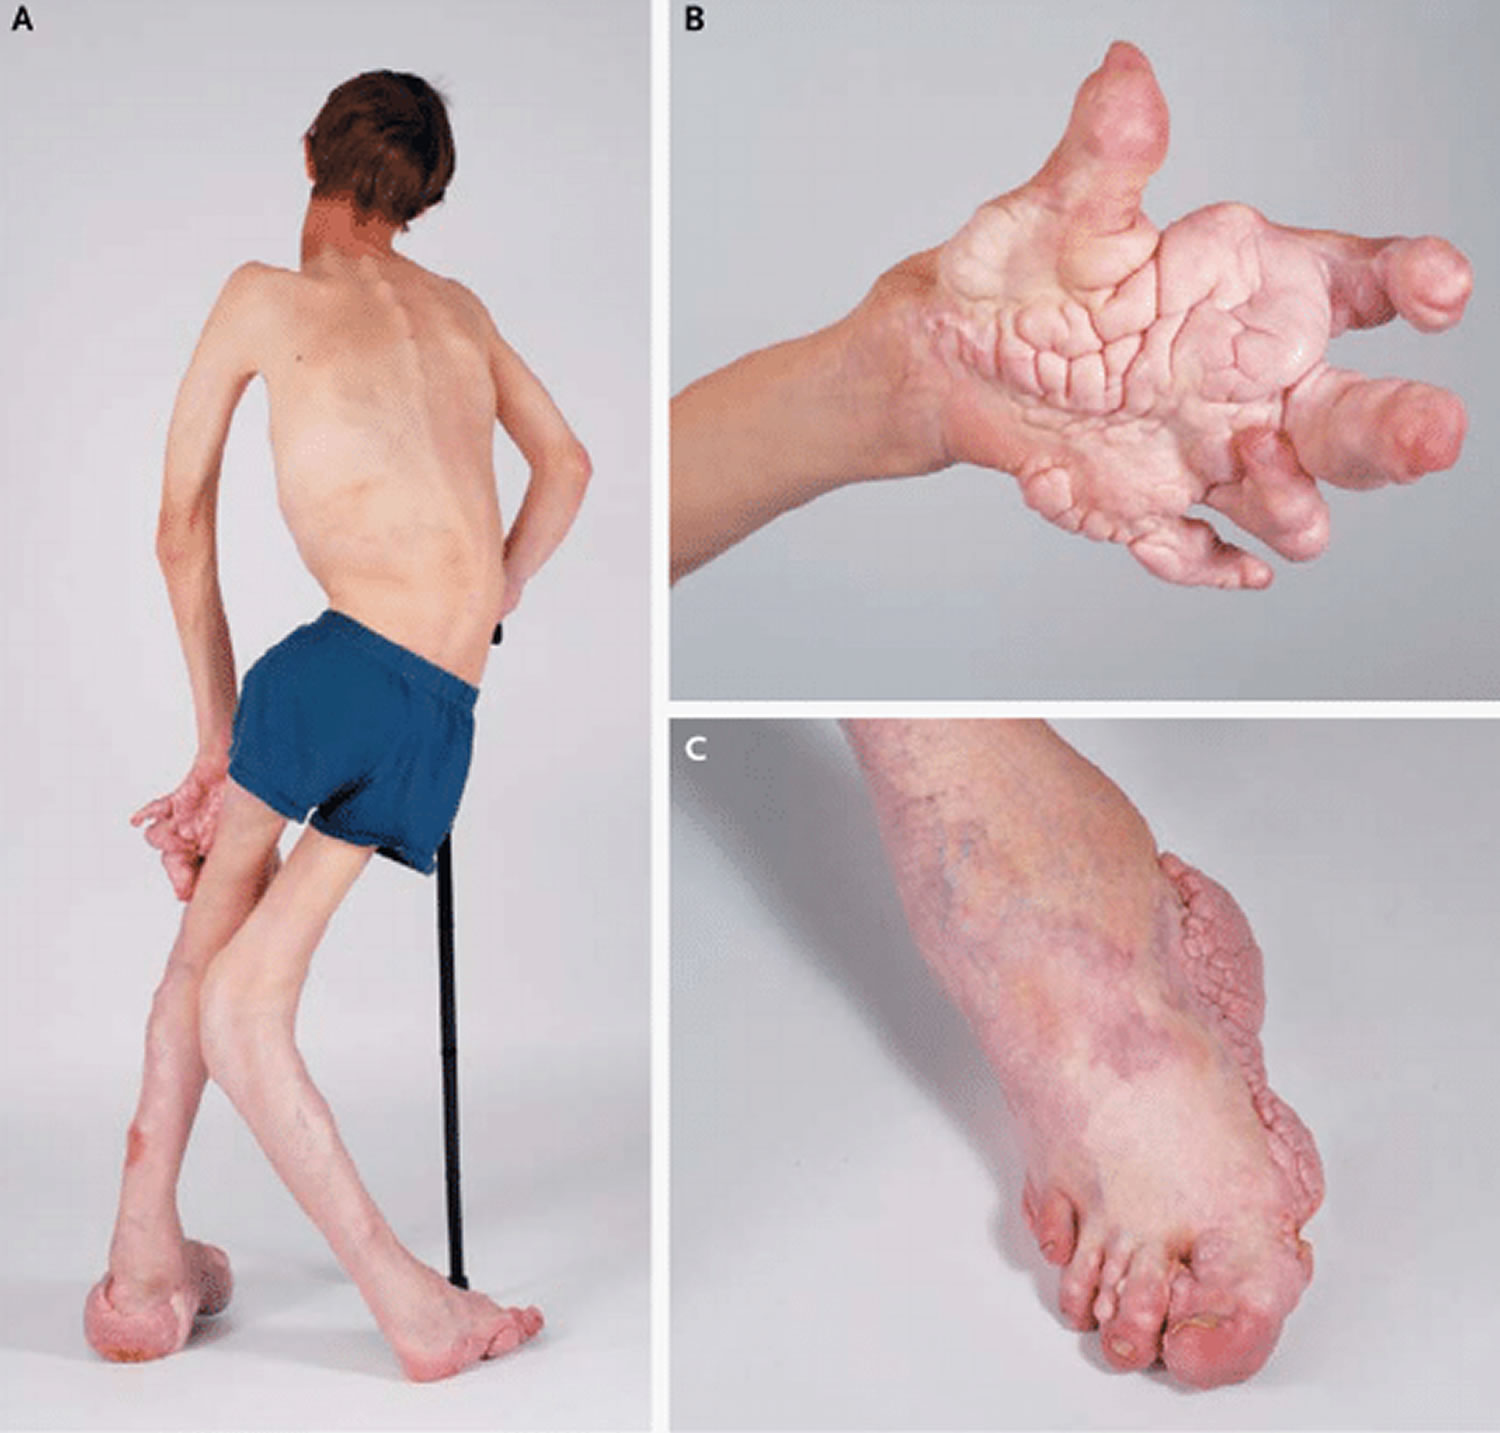 Proteus Syndrome in a 12-Year-Old Boy